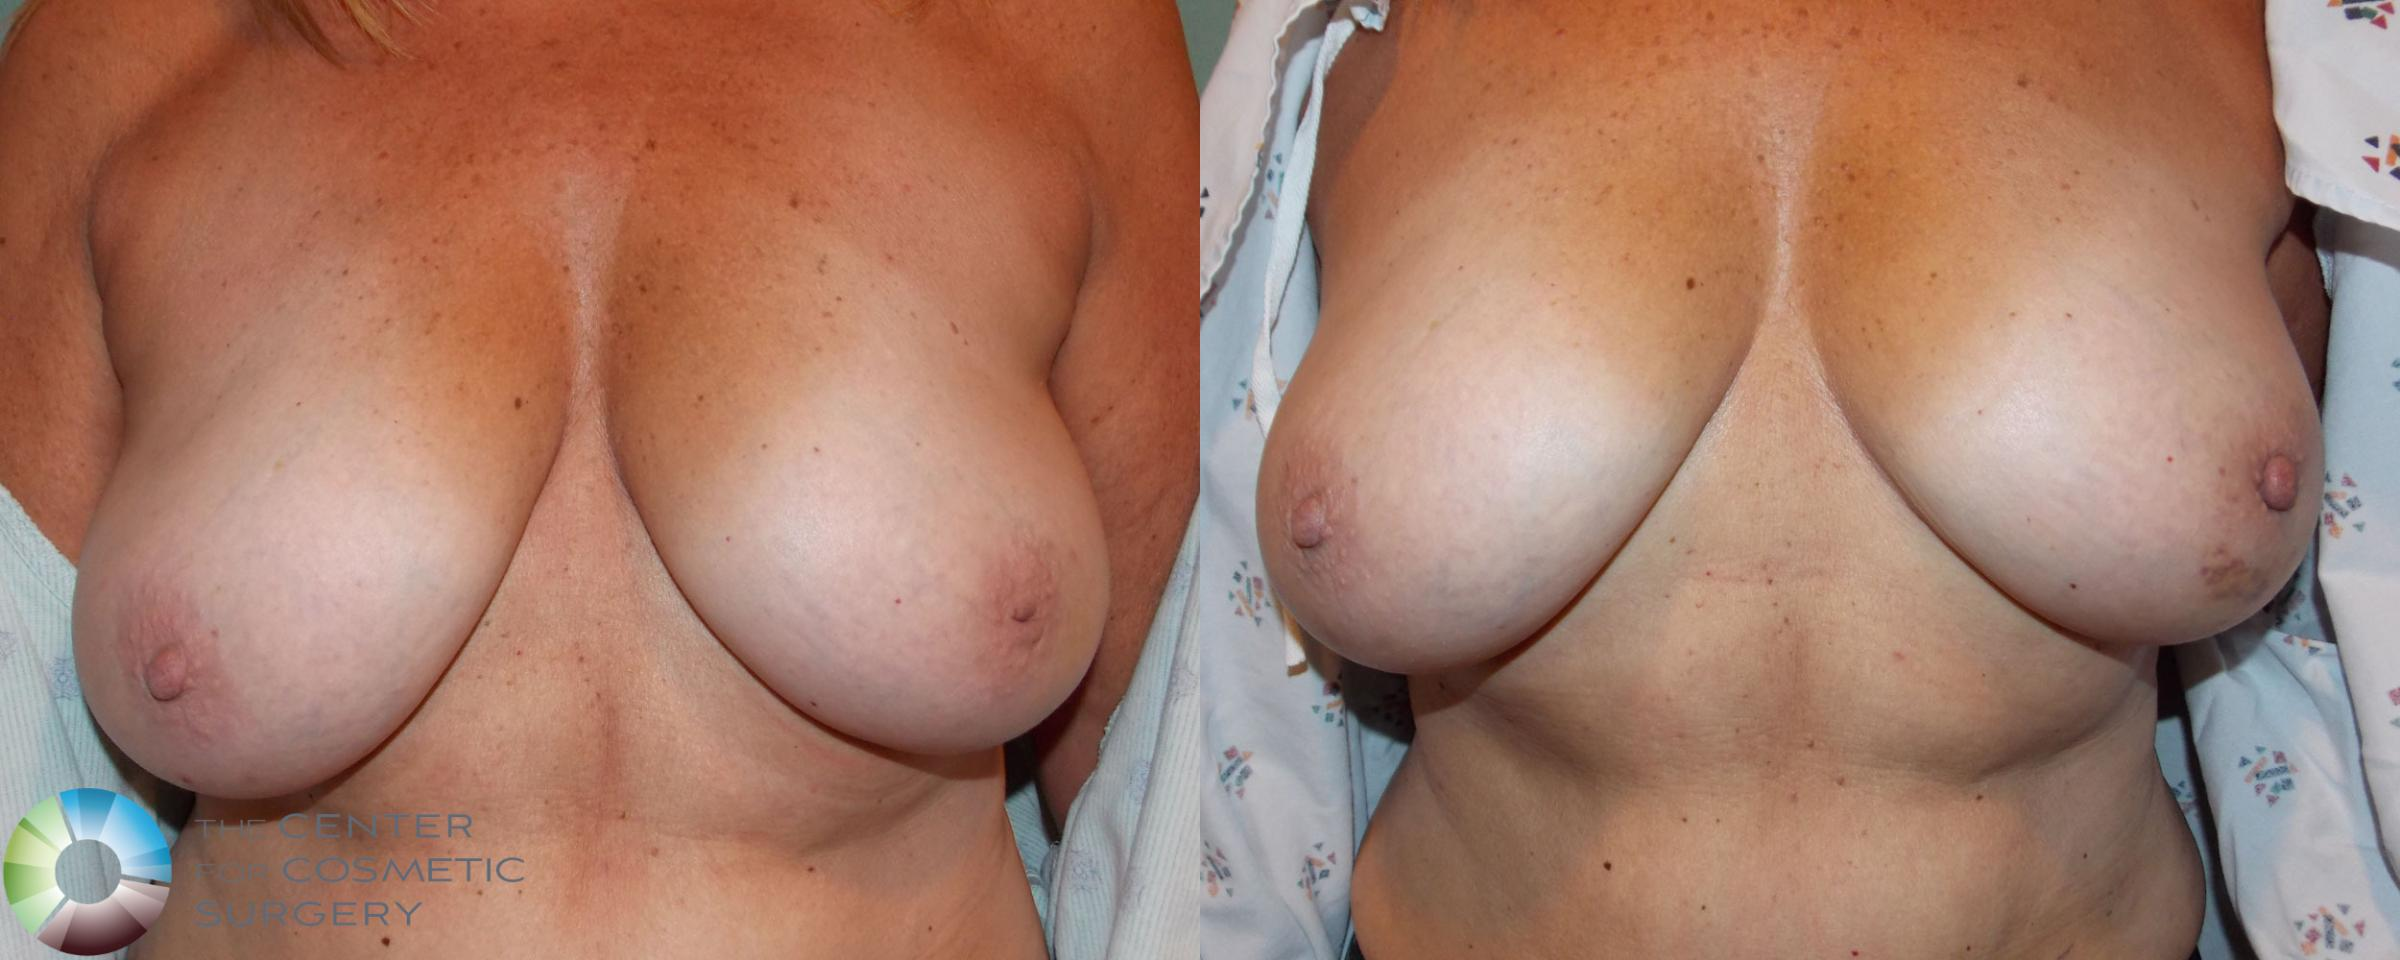 Inverted Nipple Repair Case 710 Before & After View #2 | Denver & Golden, CO | The Center for Cosmetic Surgery